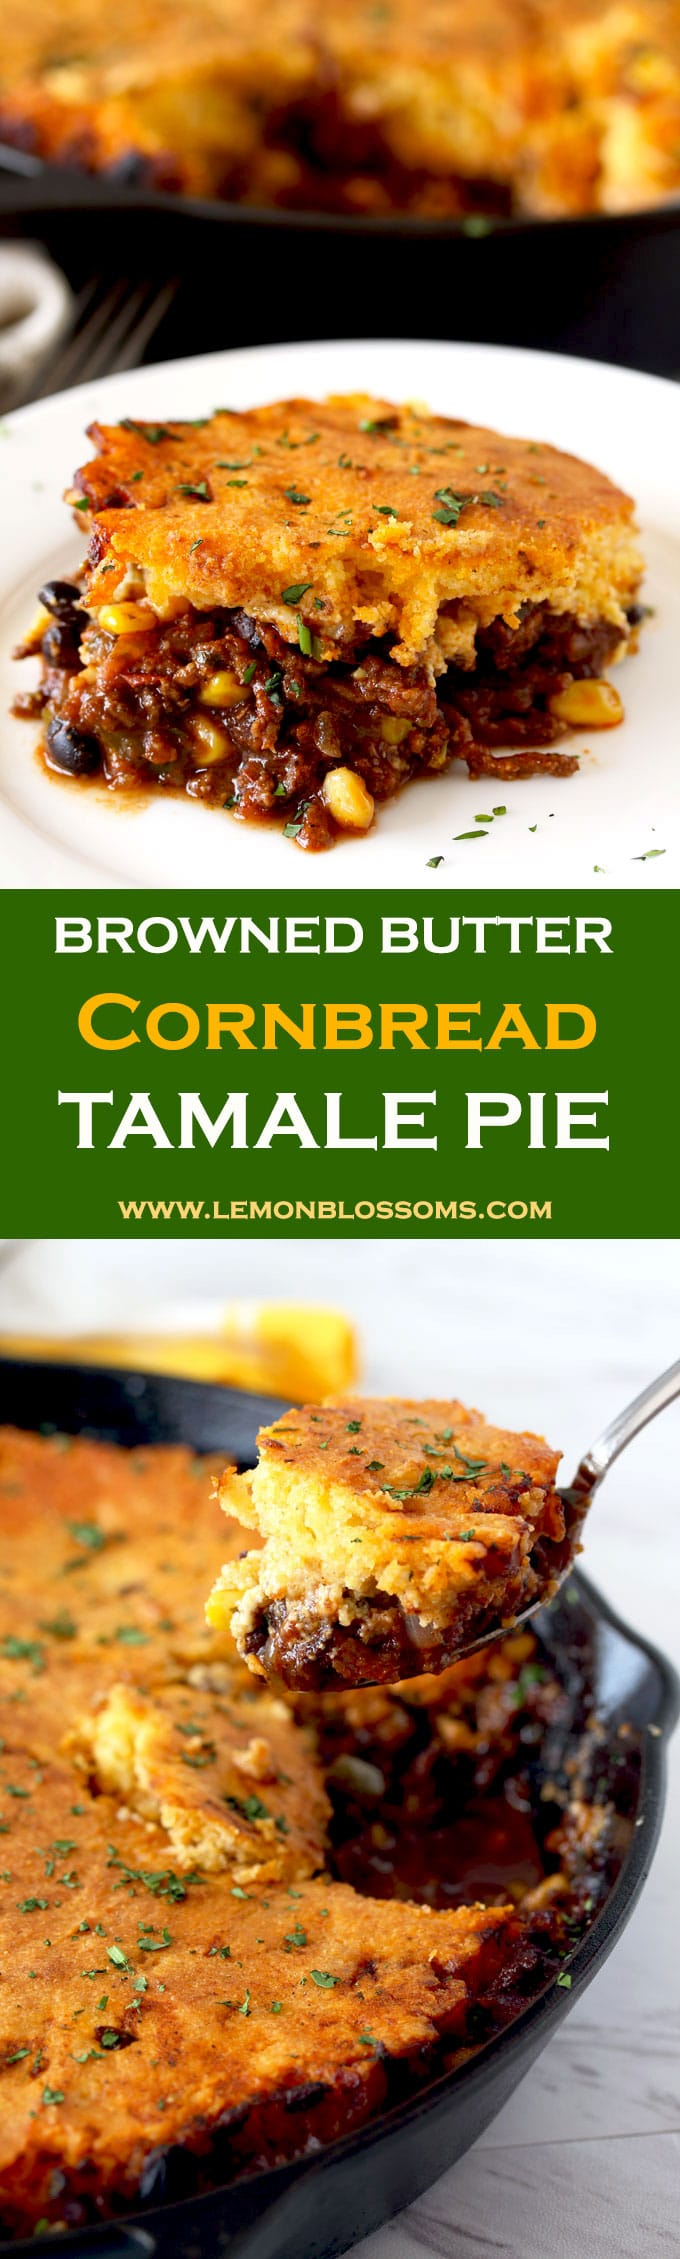 This Browned Butter Cornbread Tamale Pie is bursting with Tex Mex flavors. Spiced ground beef chili seeps through a delicious homemade browned butter cornmeal topping. The ultimate comfort food!